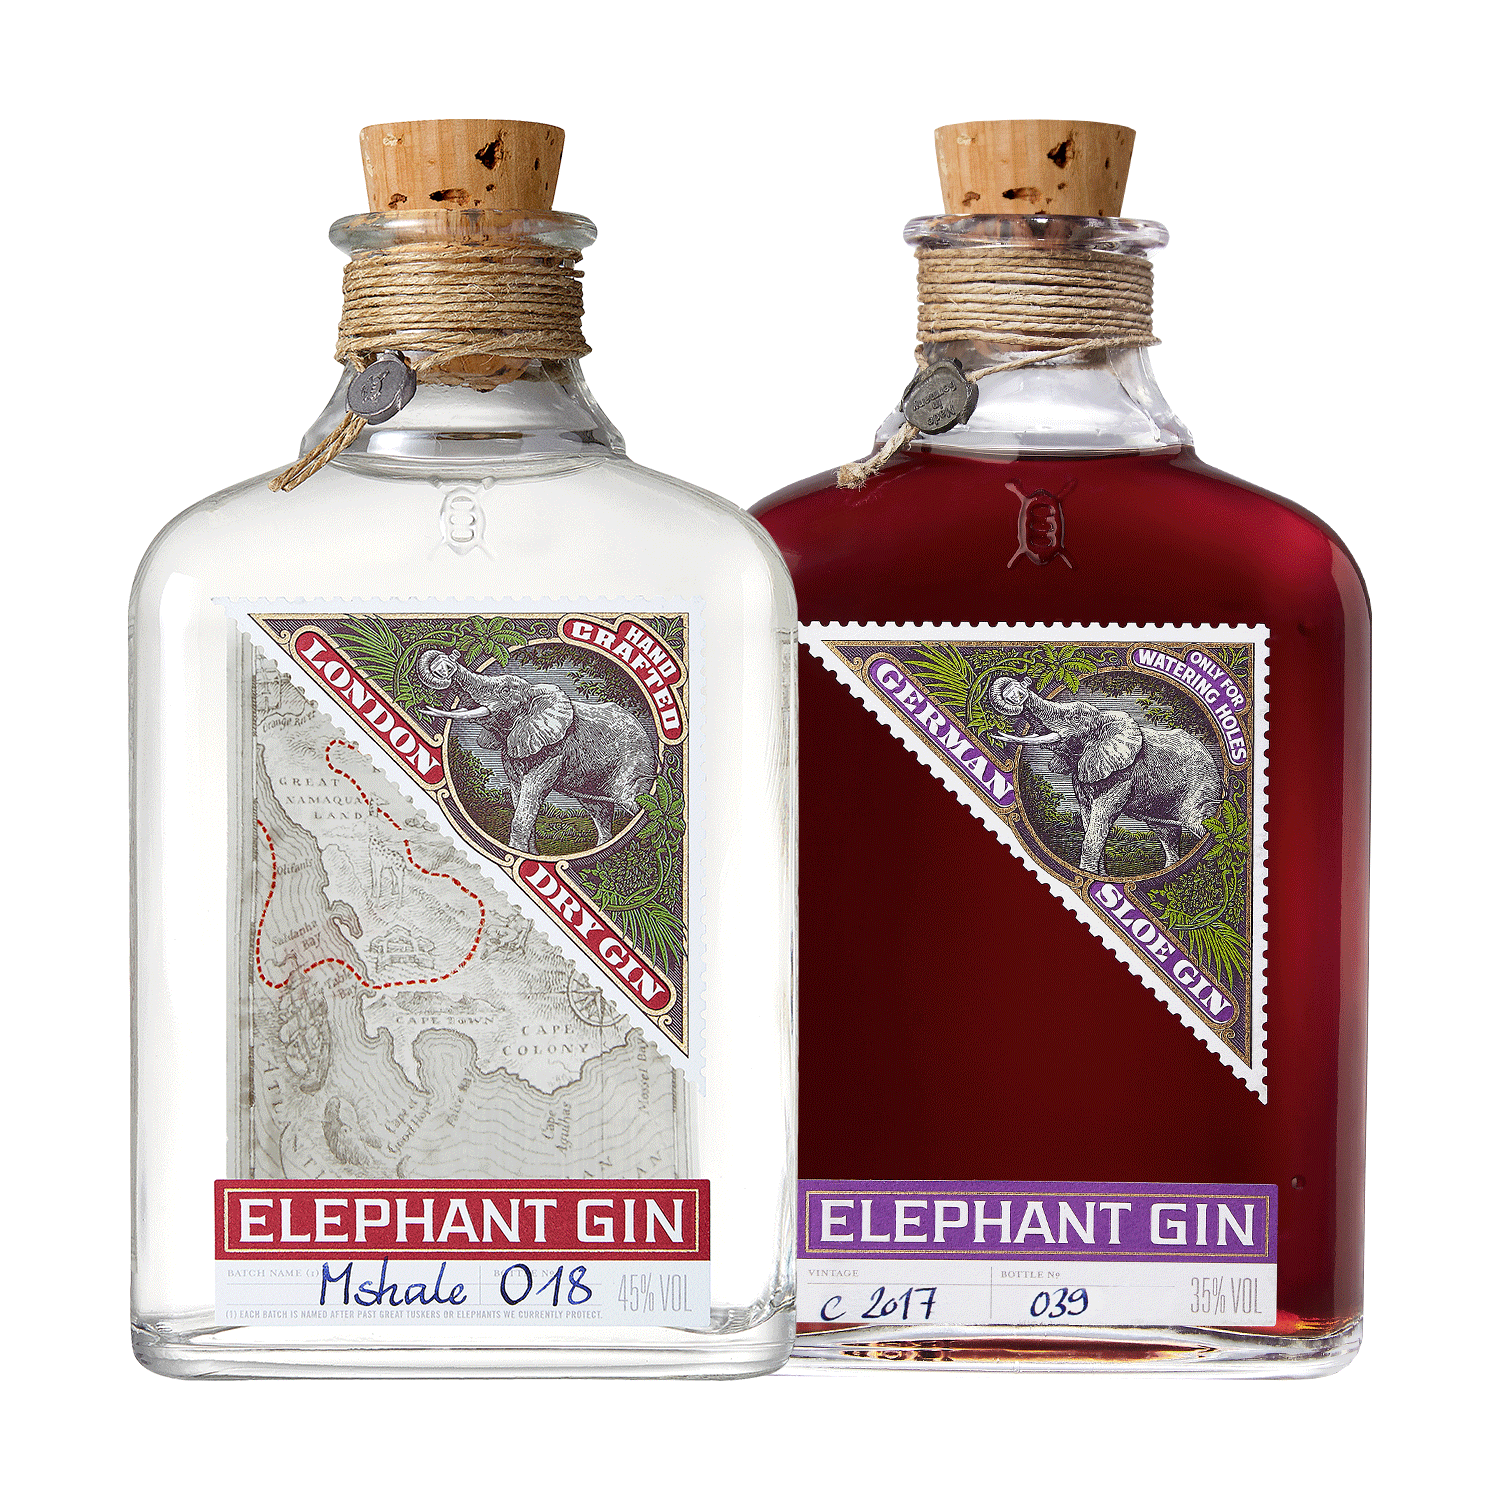 ELEPHANT LONDON DRY + ELEPHANT SLOE GIN